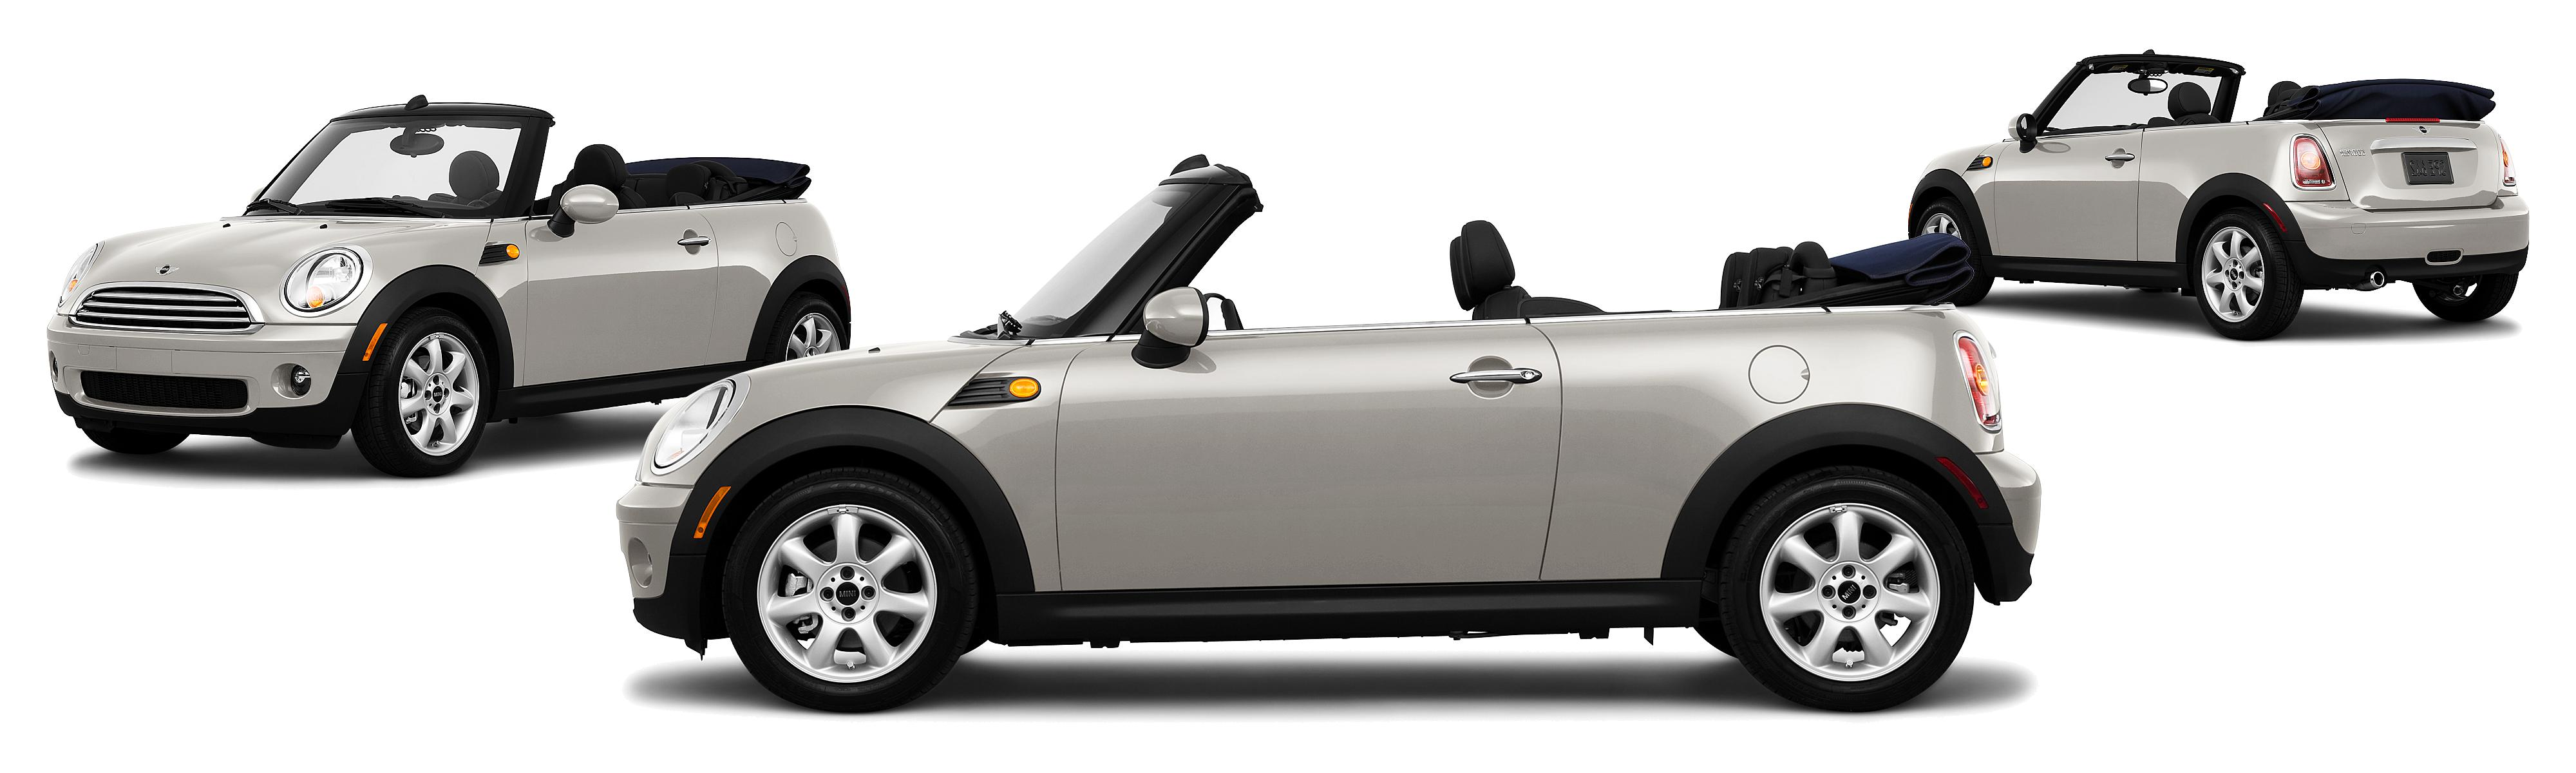 2010 Mini Cooper S 2dr Convertible Research Groovecar